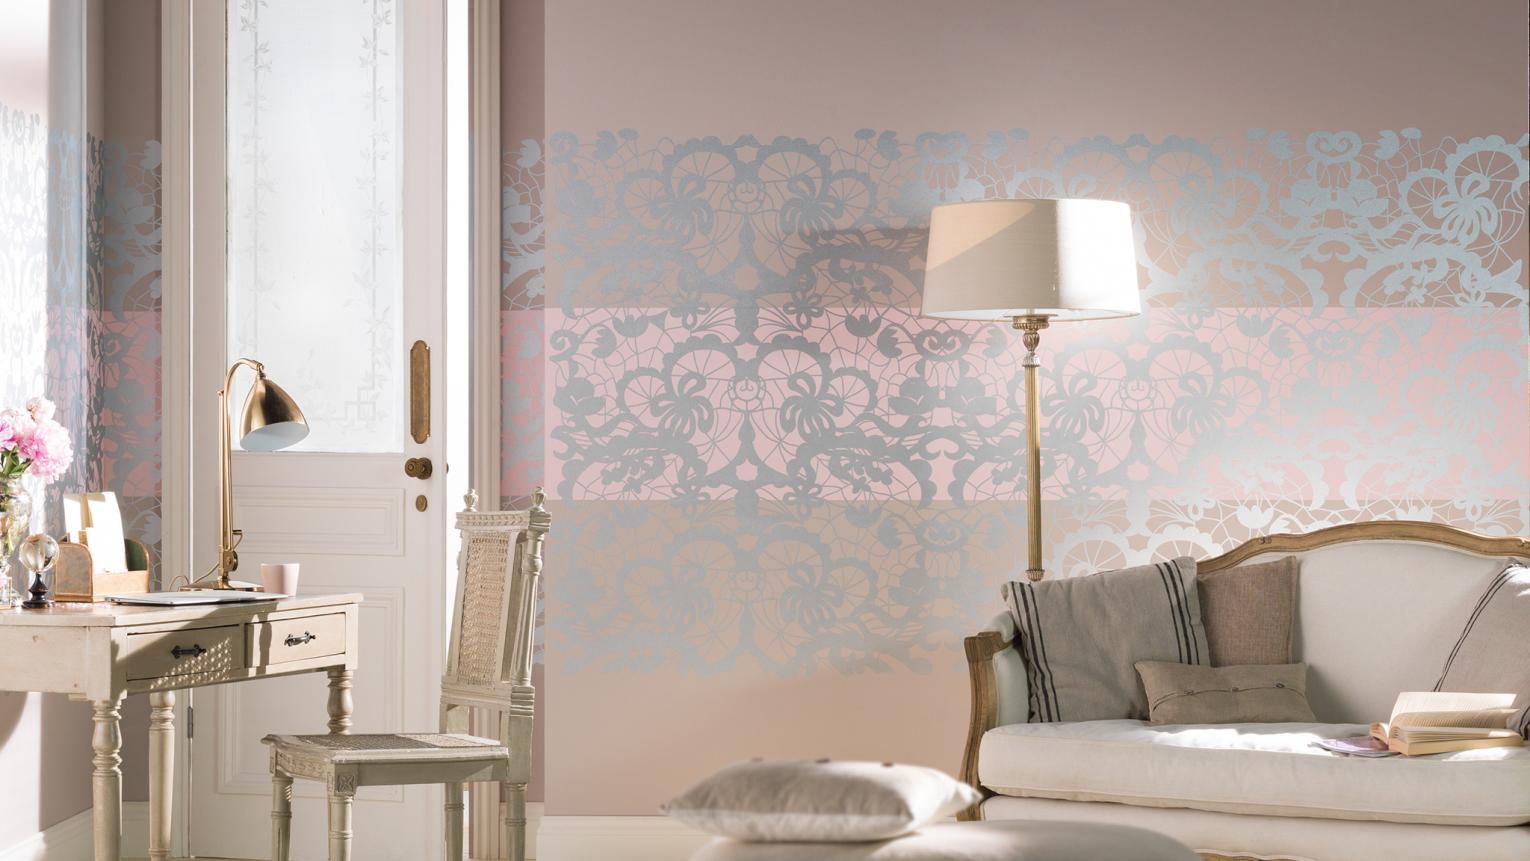 Five ways to create a romantic retreat using lace stencils, drapes, rich paint colours, luxury fabrics and lighting.